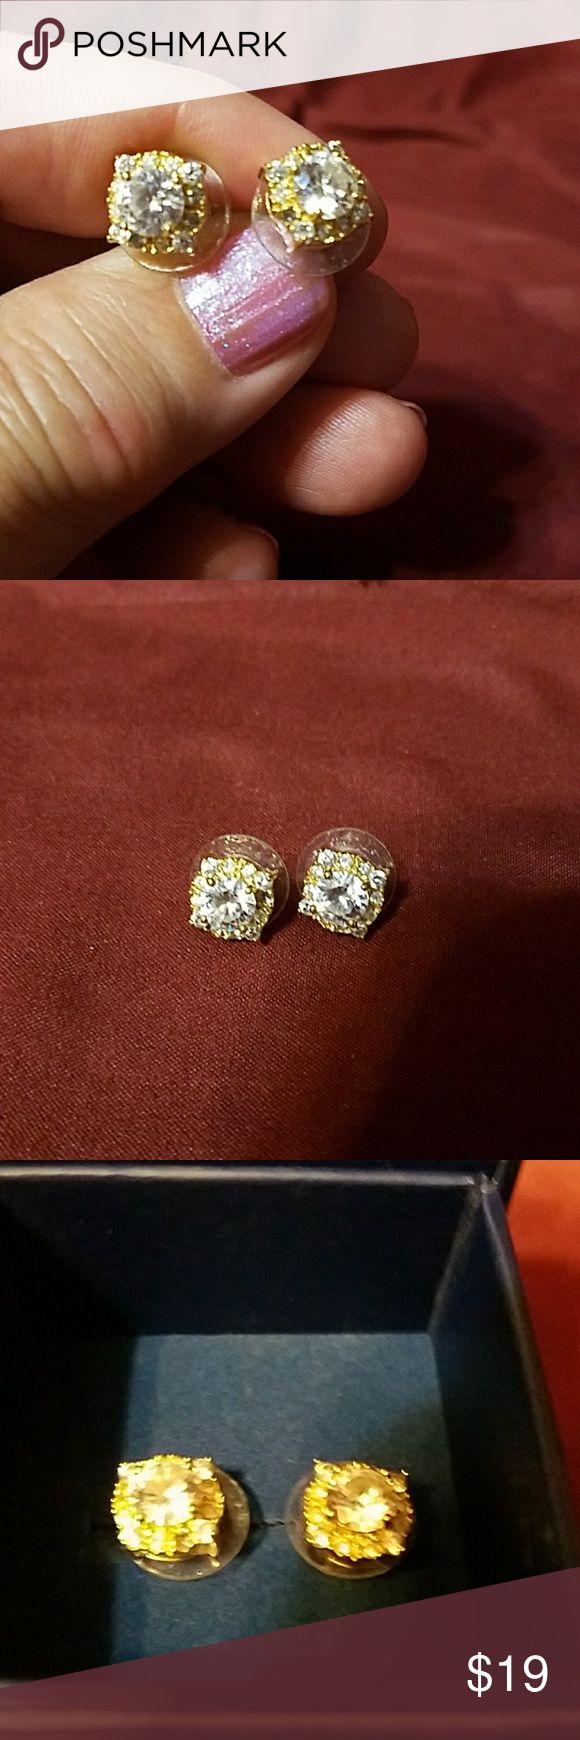 Bella Luce silver studs These are Bella Luce studs Bella Luce is at the top of the chain of CZ they are if you go by Diamond awake I would say that are a little bit more than 2 carats very pretty and sparkly I love bling Jewelry Earrings